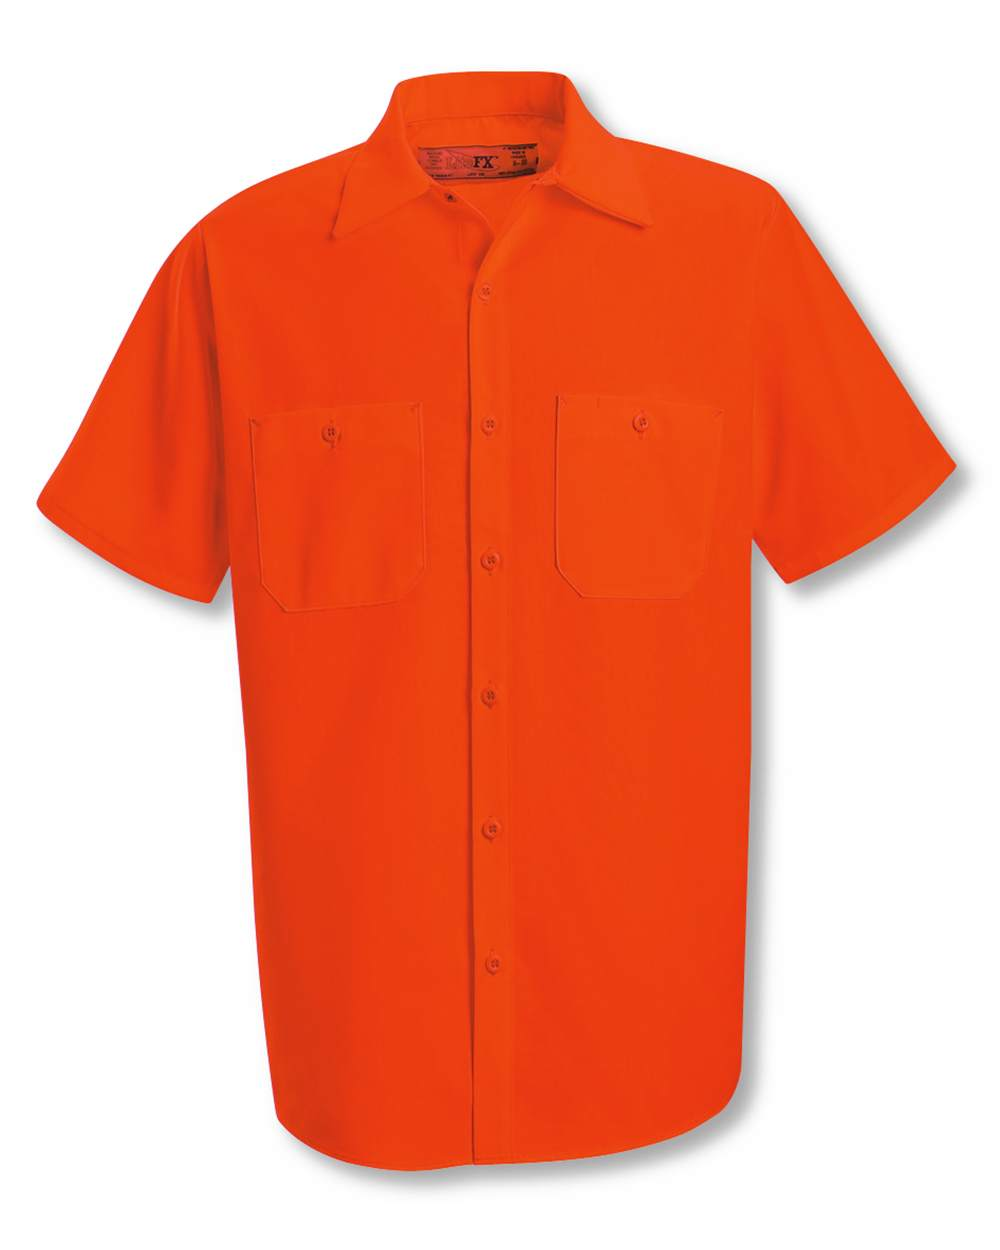 Red Kap Industrial SS24 Enhanced Visibility Short Sleeve Work Shirt